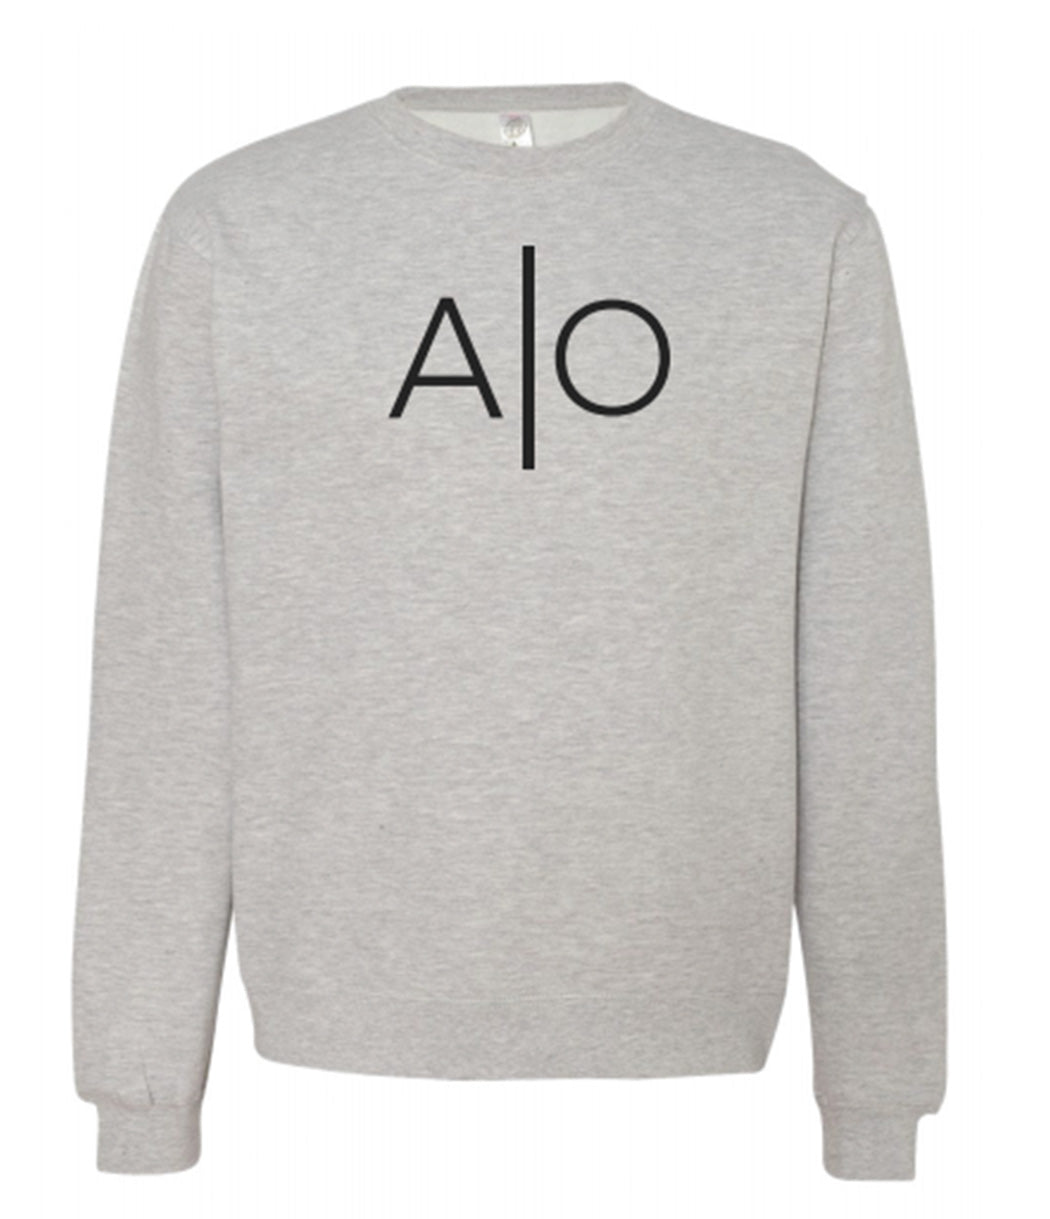 Alpha Omnia Grey Heather Crewneck